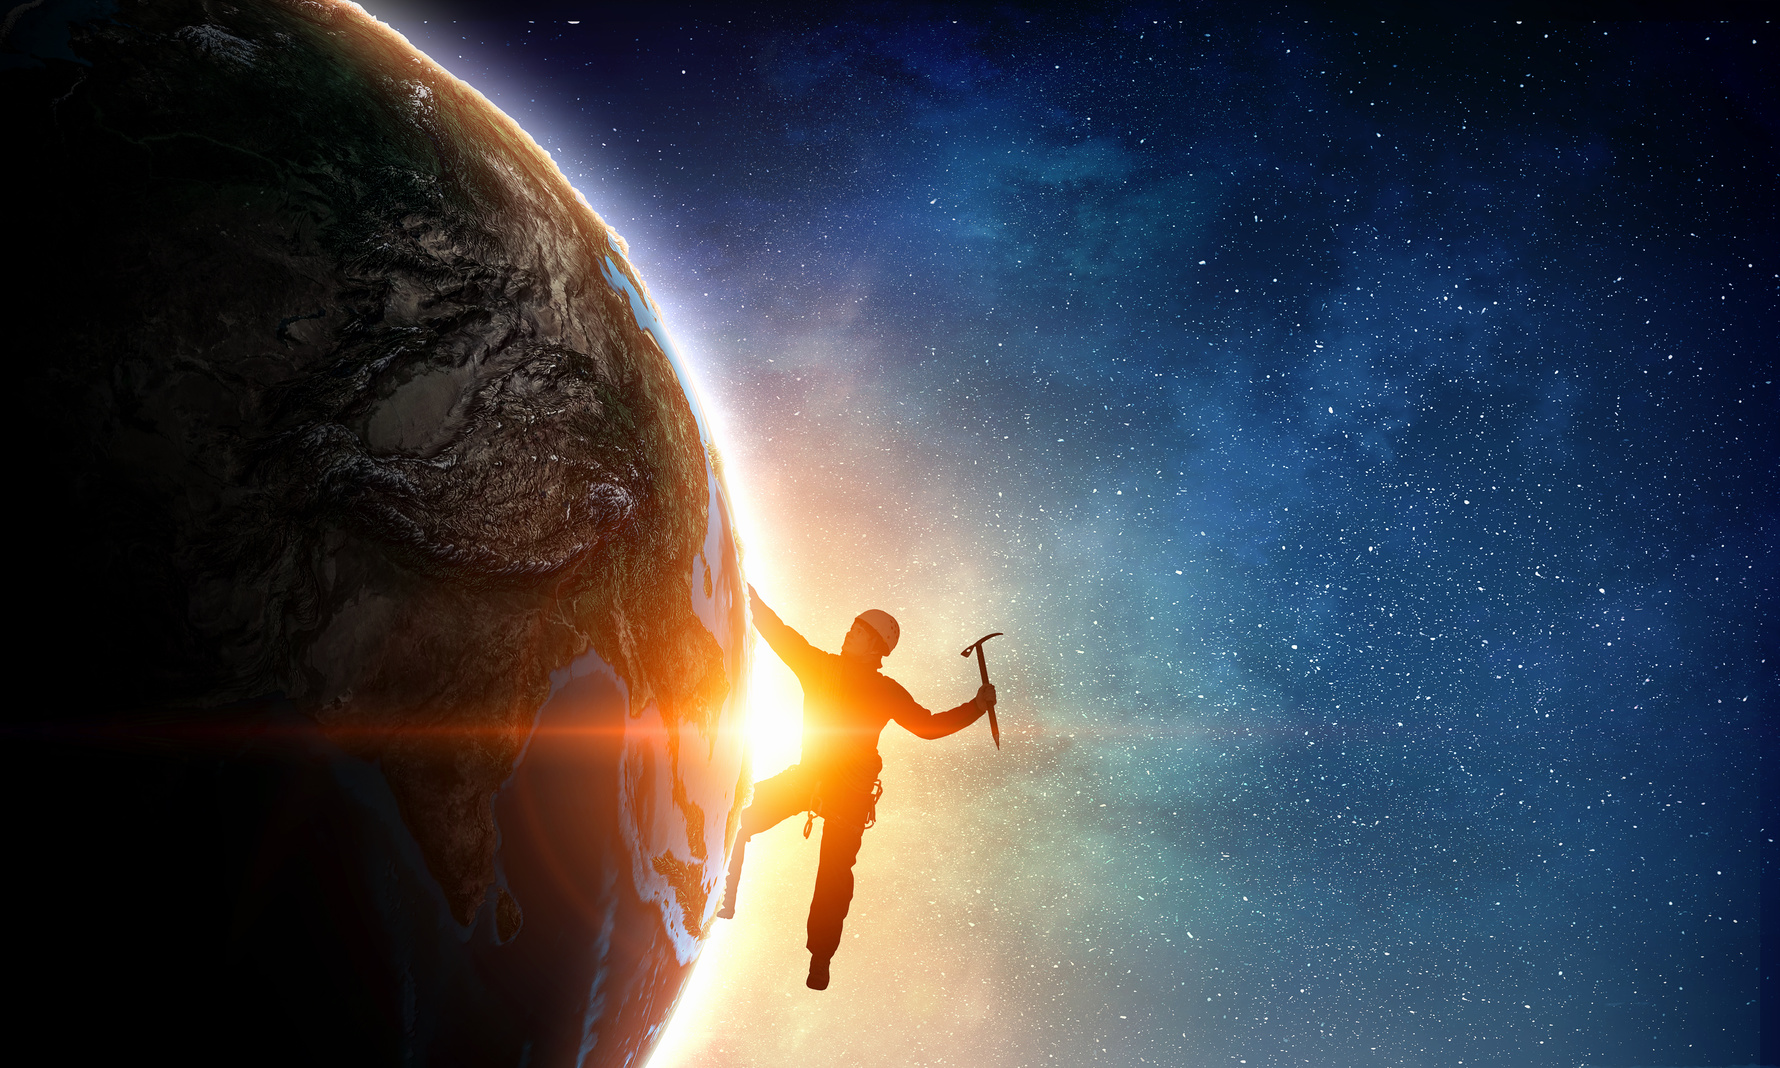 Silhouette of alpinist climbing Earth planet. Elements of this image are furnished by NASA